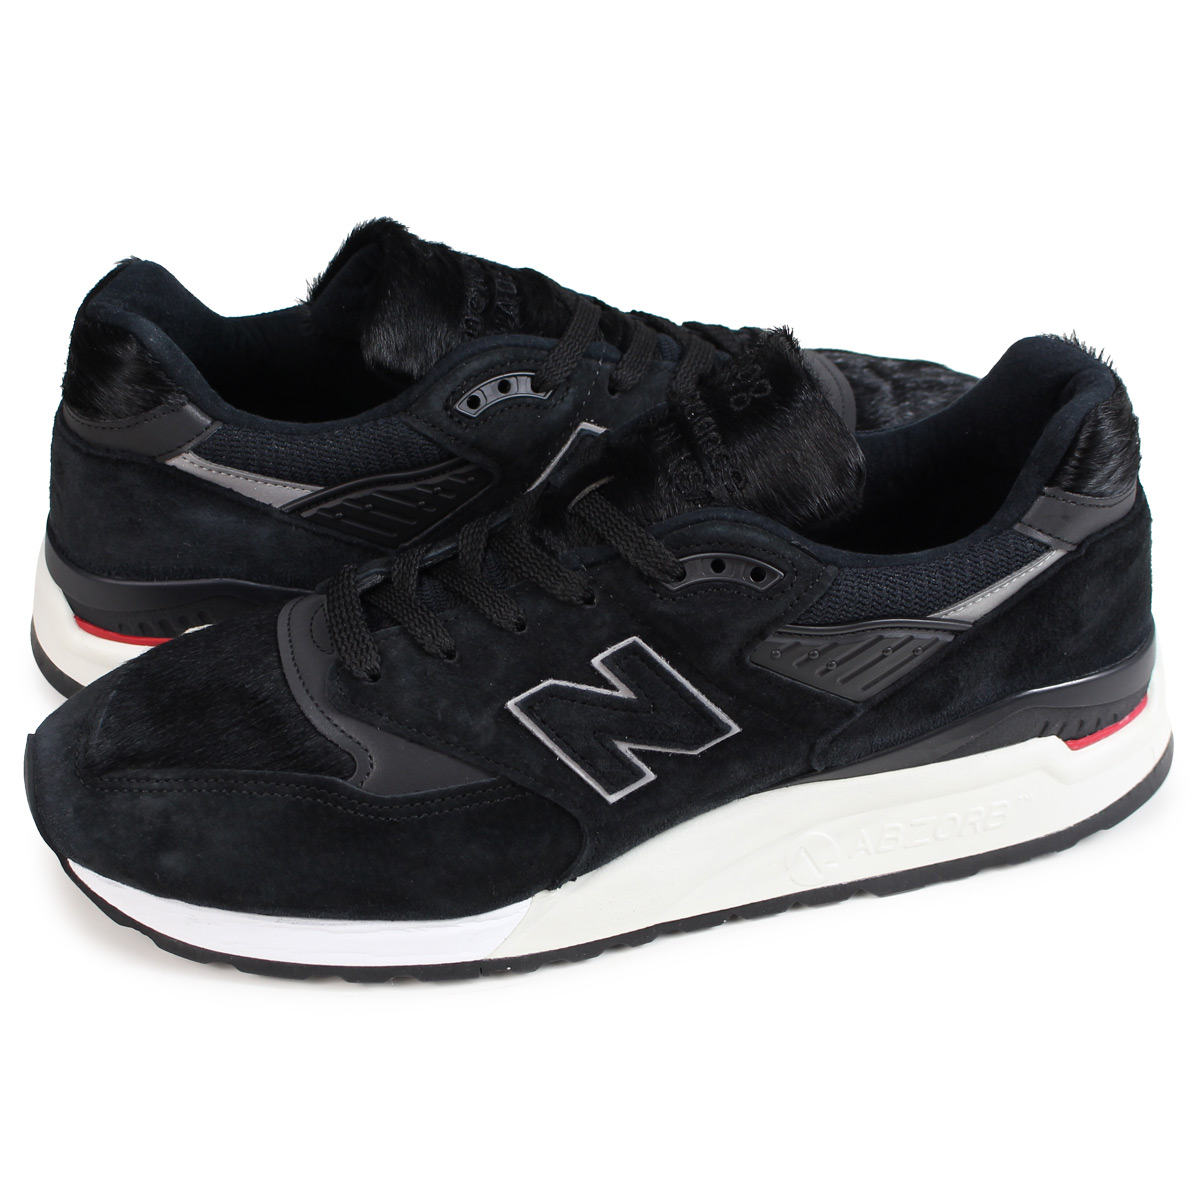 best website c3f08 75111 new balance M998TCB New Balance 998 men's sneakers D Wise MADE IN USA black